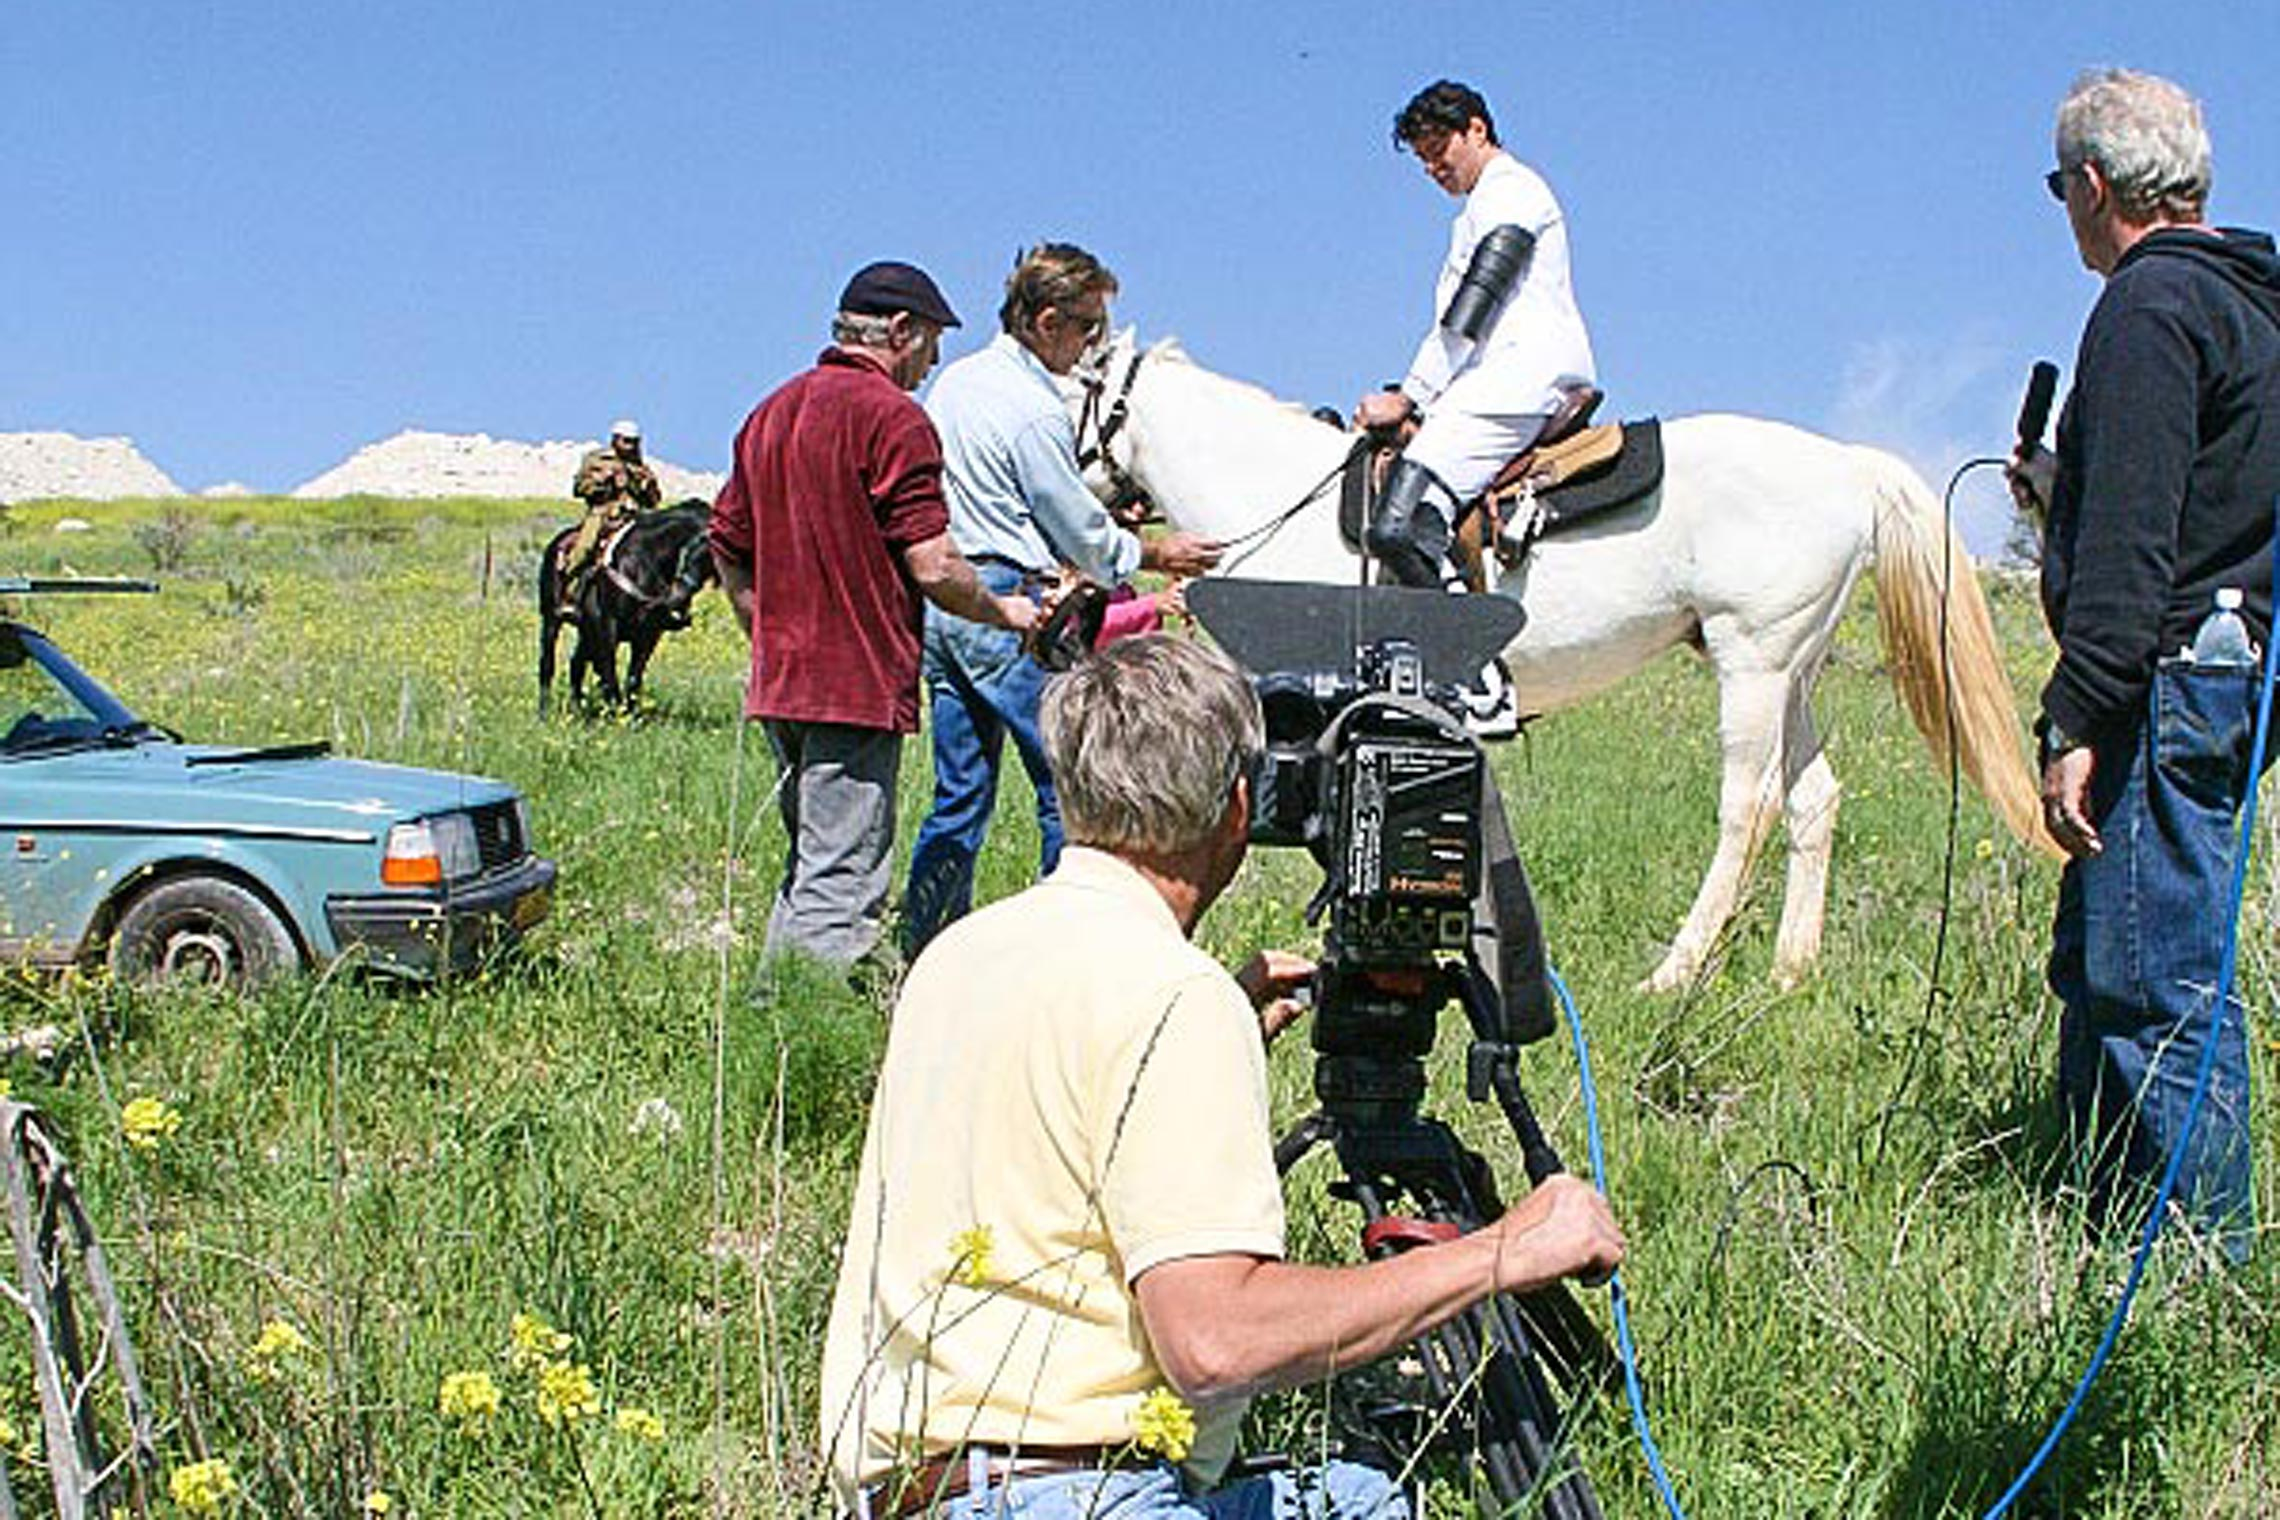 Behind the scenes shooting the White Horsemen of the Apocalypse in <em>The Dark Prince</em>.